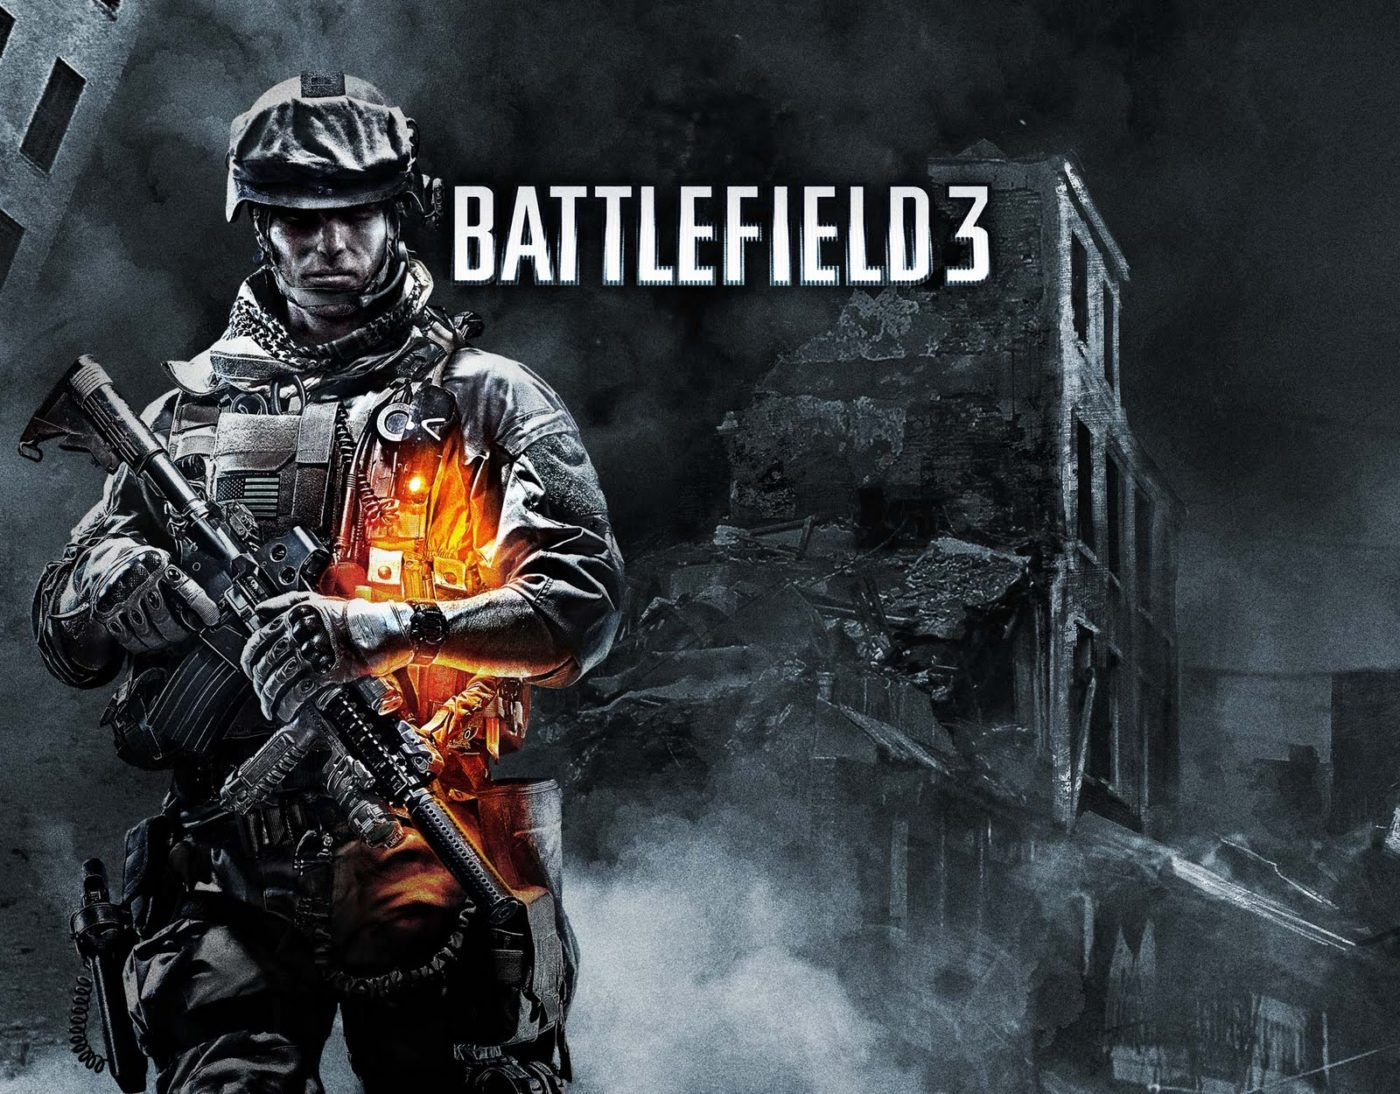 Battlefield 3 for Xbox 360 and PS3 Visually on Par - DICE ...